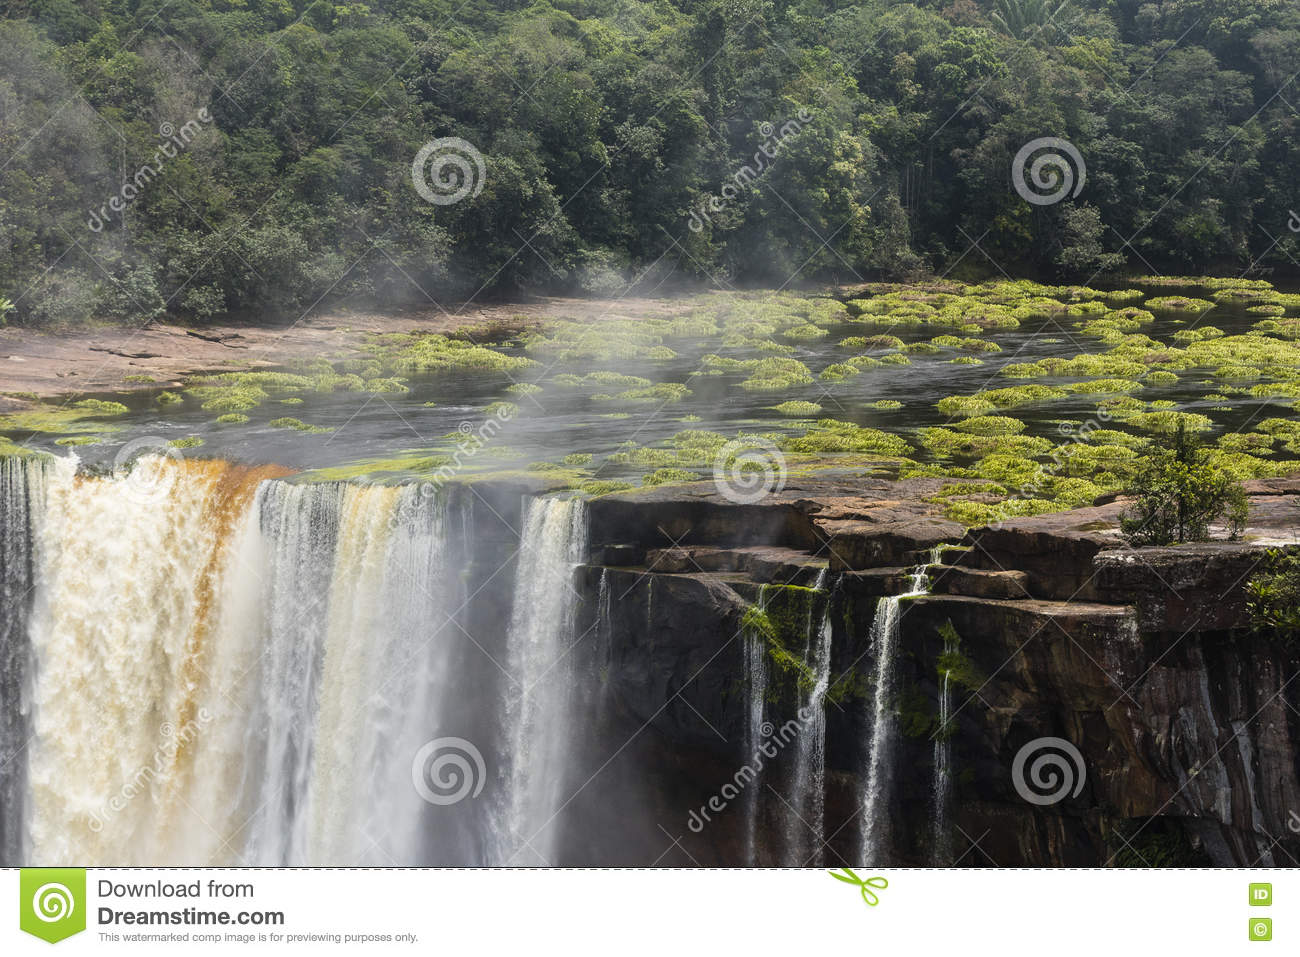 Kaieteur waterfall and plants in the water